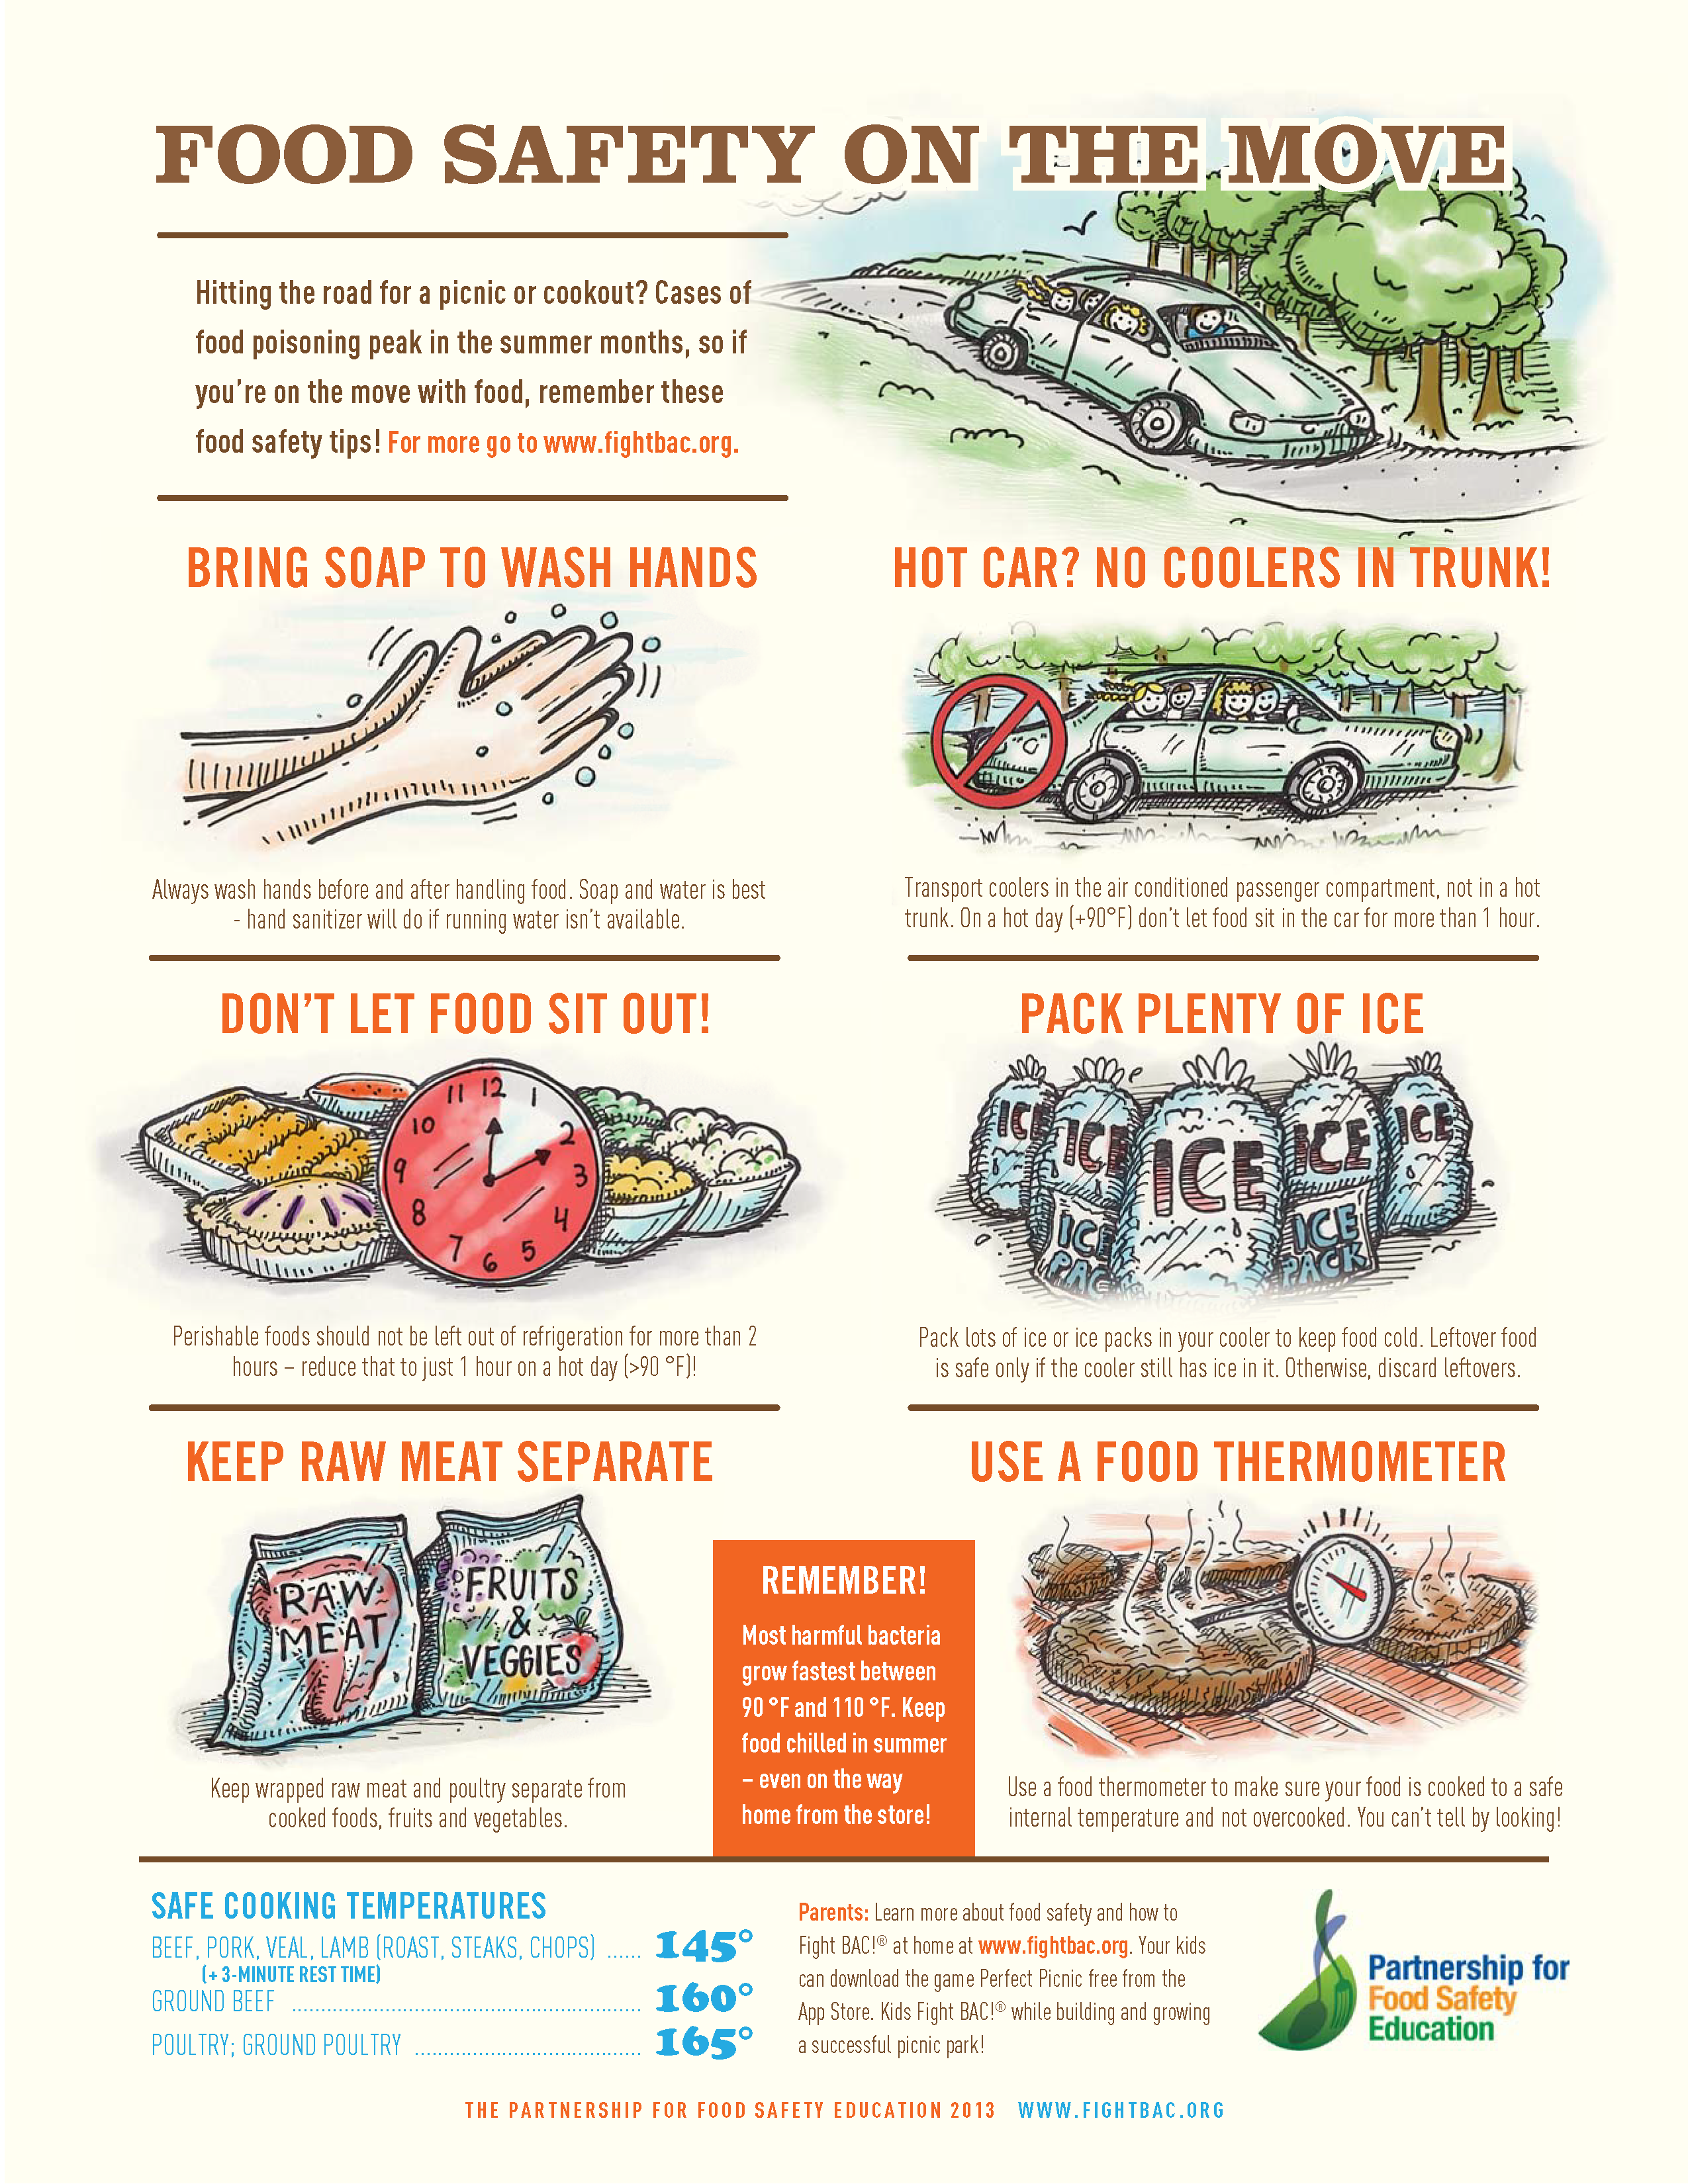 Food Safety On the Move Tips flyer